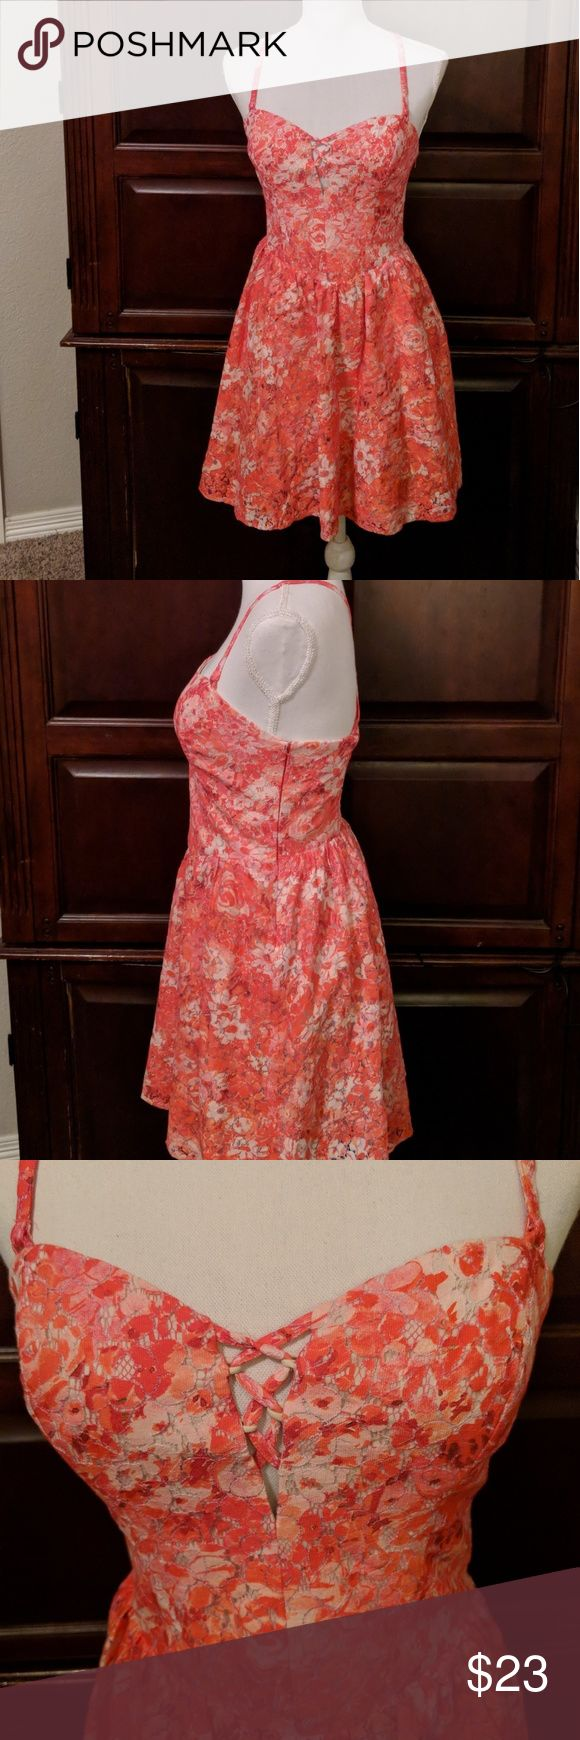 """Guess dress size 6 In excellent condition. Side zipper and lined. Shades of orange, red and white.  Size 6 Length from top of shoulder 32"""" Arm pit to arm pit 30""""  *Free from rips and frays *Comes from a smoke free home *Depending on time of purchase, items will be shipped out same or next day.  Thank you for looking! Guess Dresses"""